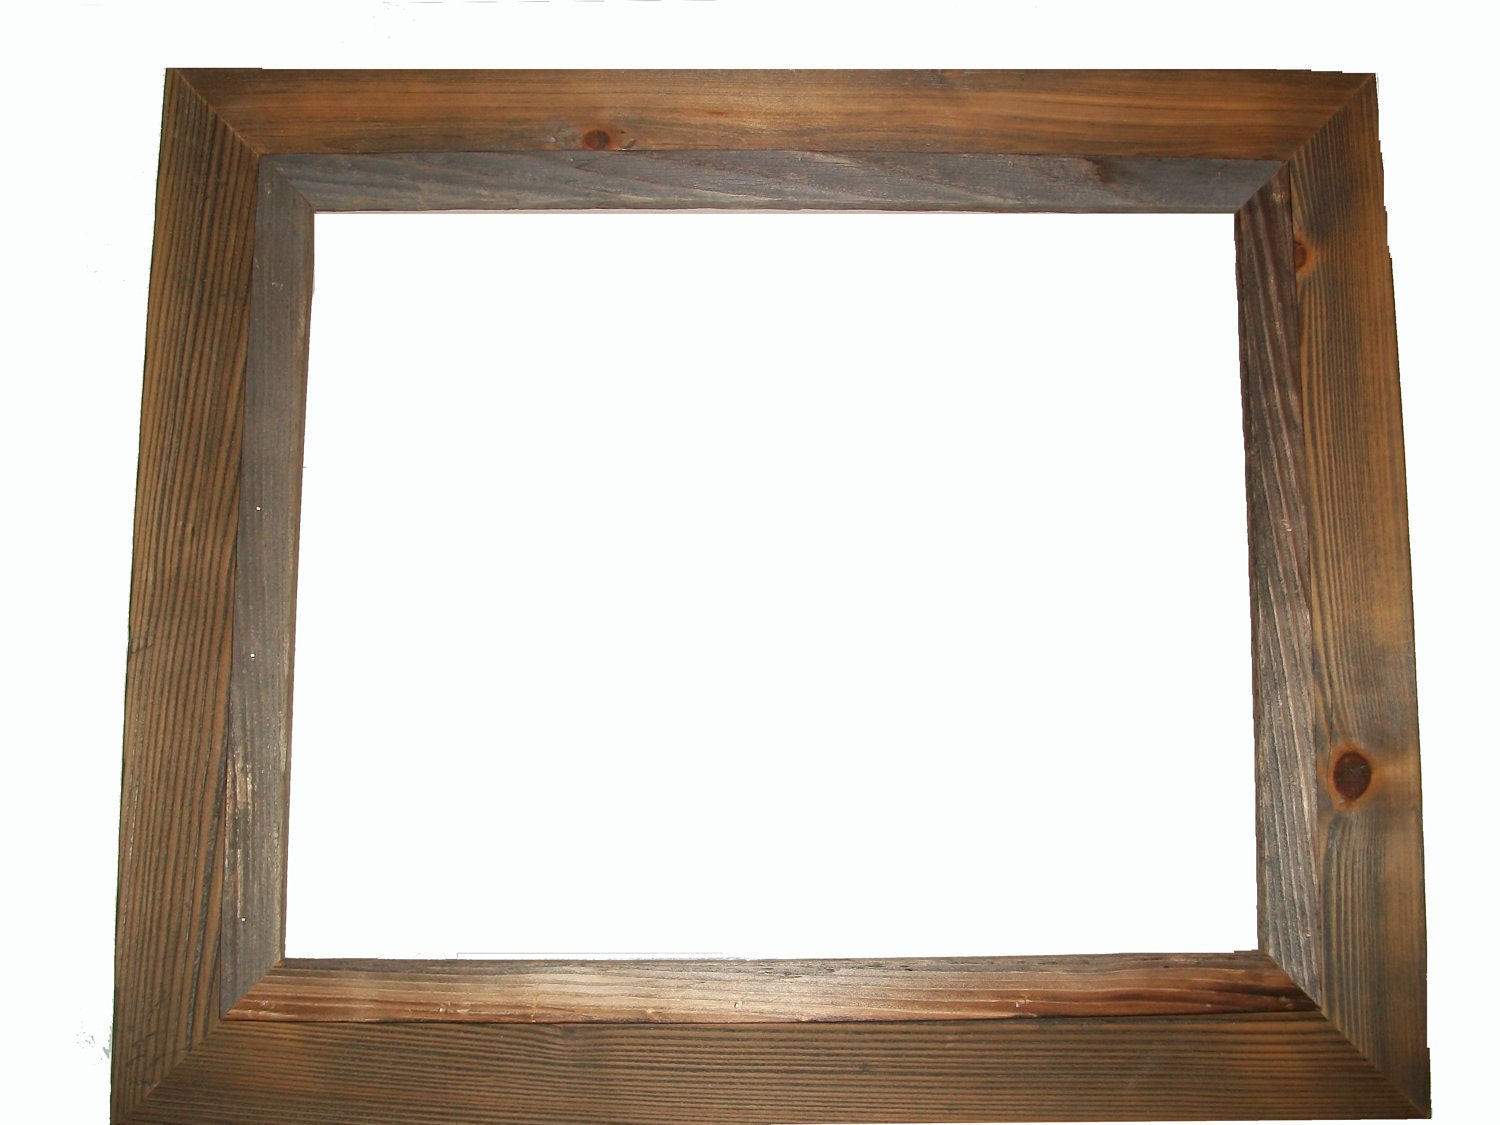 Custom barnwood frame fits 16x20 photo by nwphotoadventures for 16x20 frame